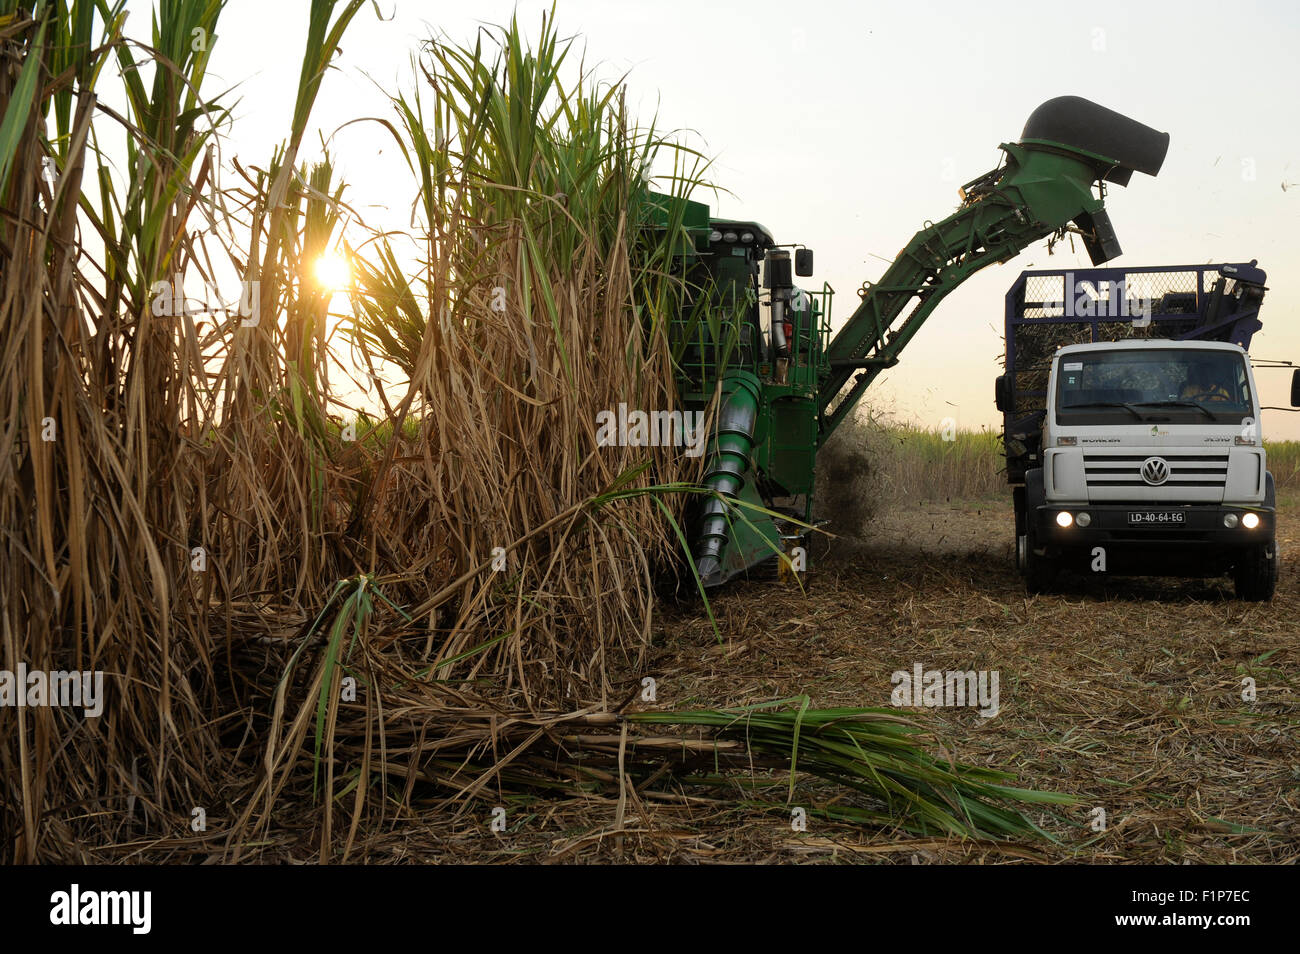 ANGOLA Malange , PAC Pòlo Agroindustrial de Capanda, Biocom Project, joint venture of Brazil company Odebrecht - Stock Image